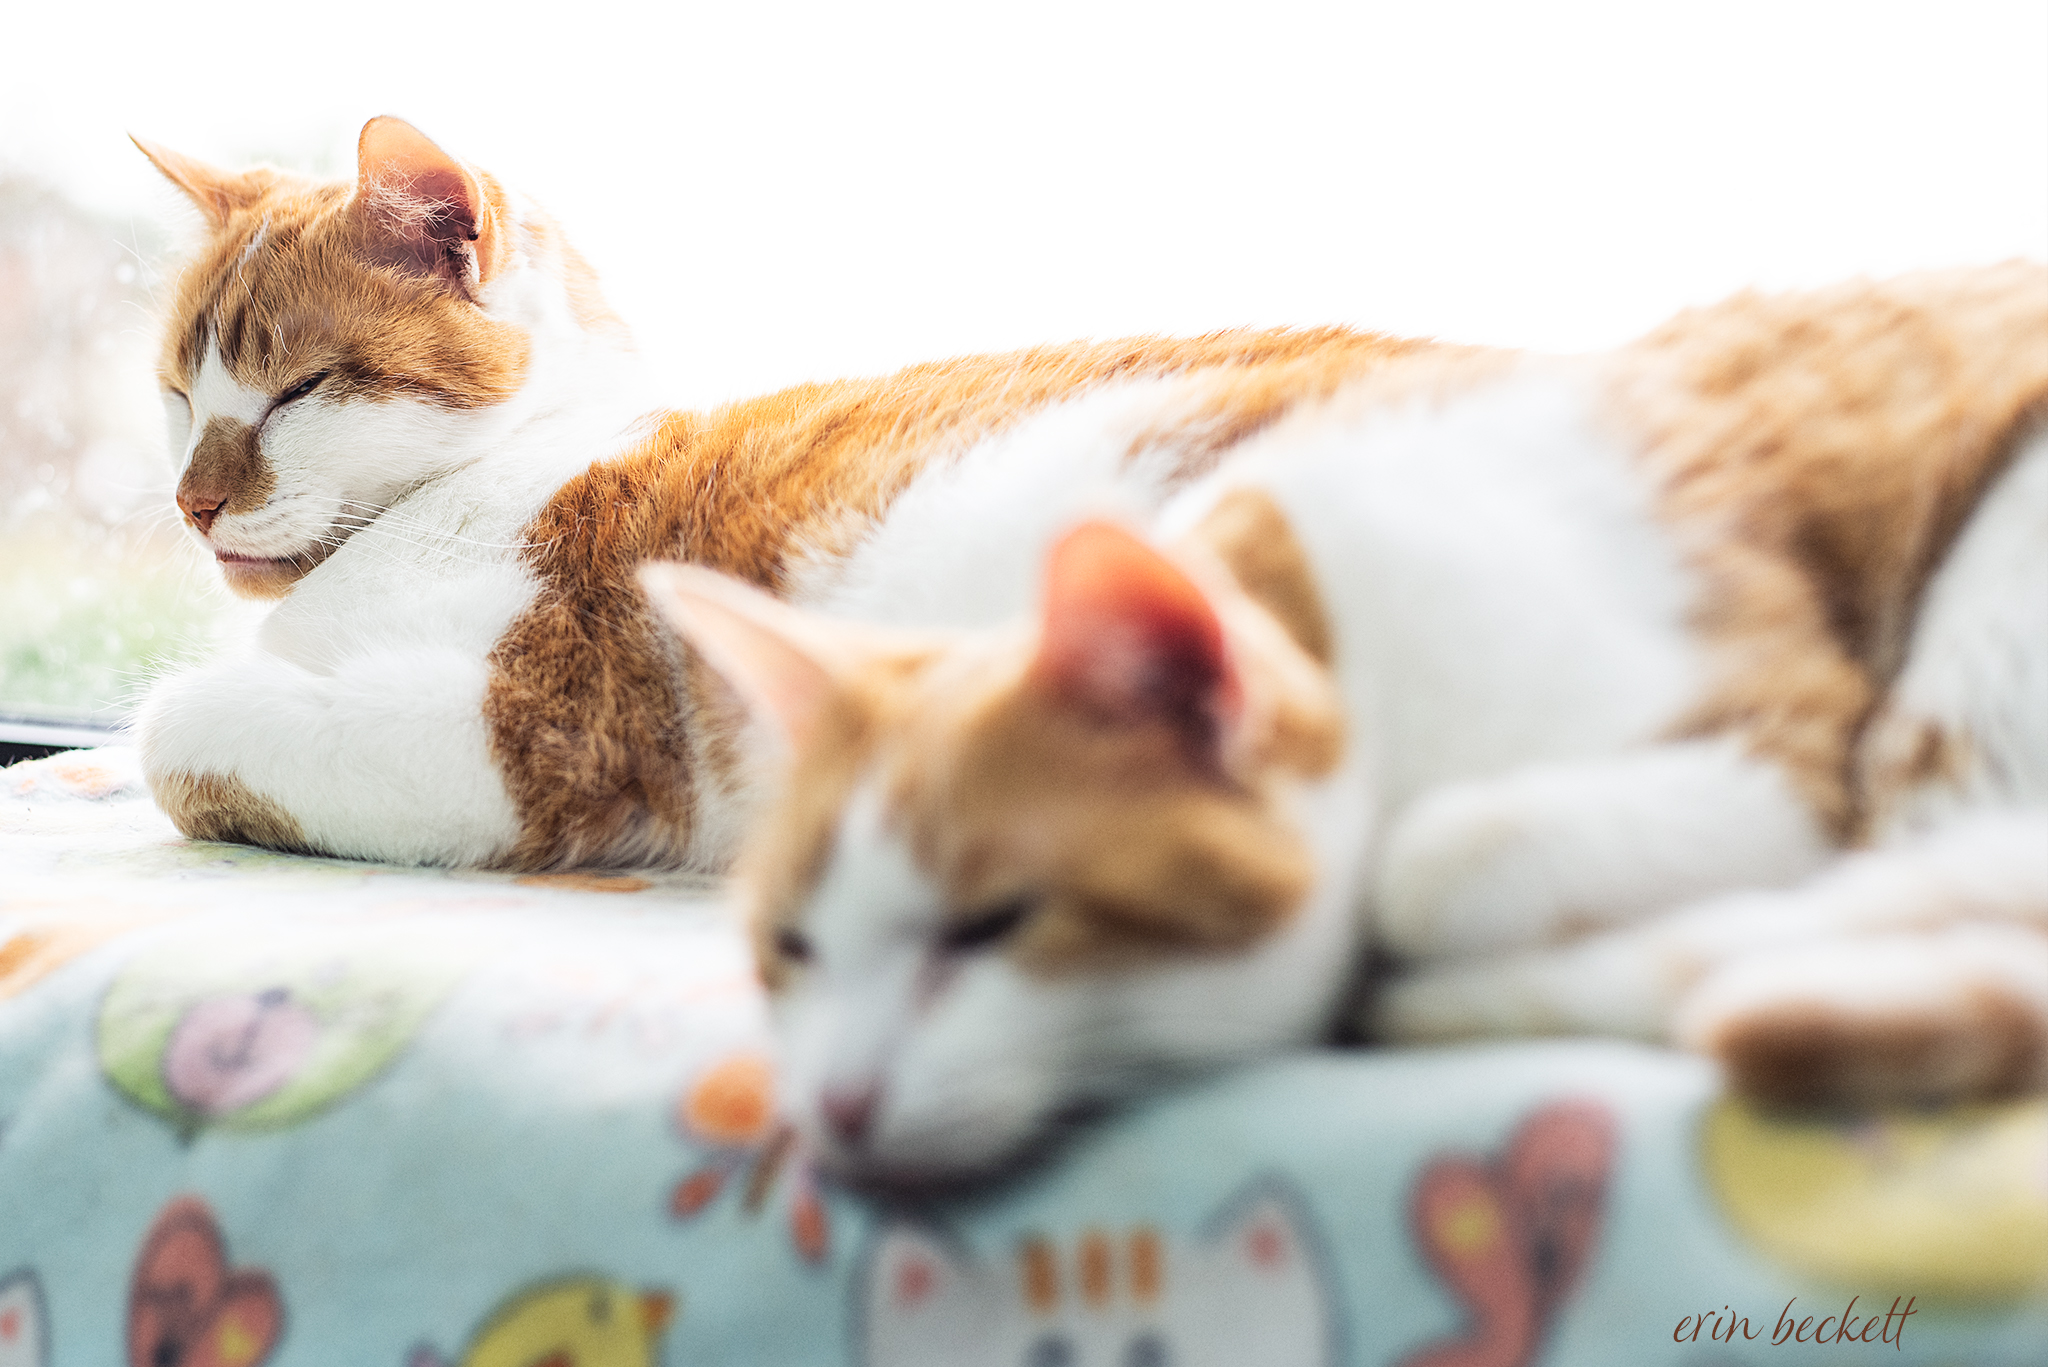 Hansel and Gretel taking a cat nap after their breakfast